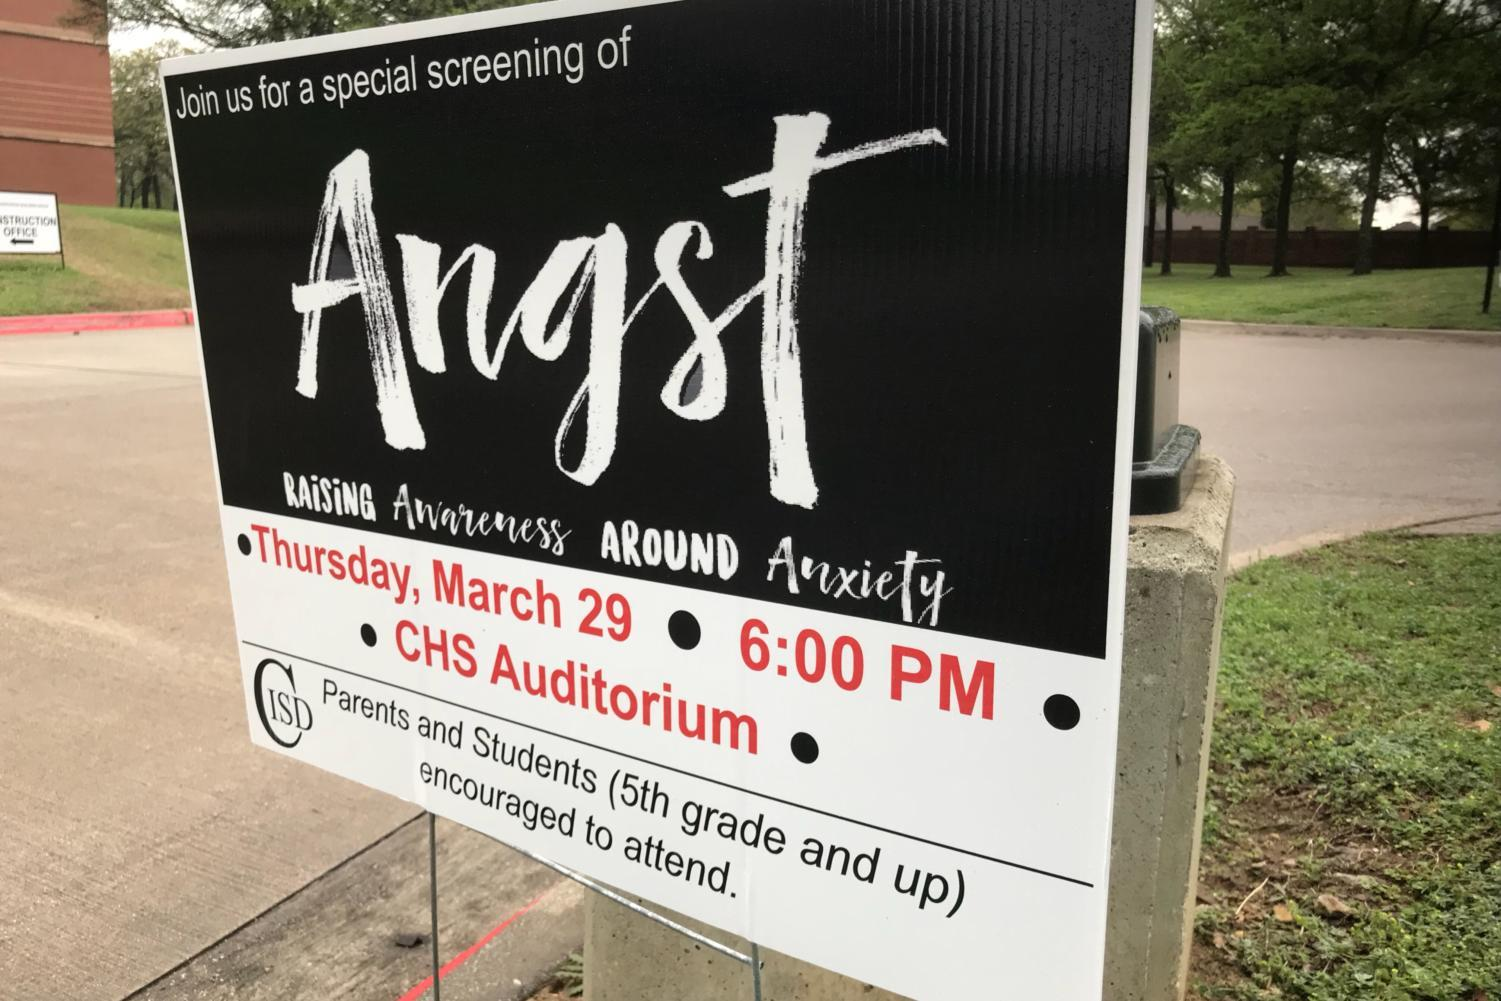 Coppell ISD is screening the documentary  Angst: Raising Awareness Around Anxiety on March 29 from 6 - 7:30 p.m in the Coppell High School auditorium. The film focuses on raising awareness for anxiety and de-stigmatizing the issue.